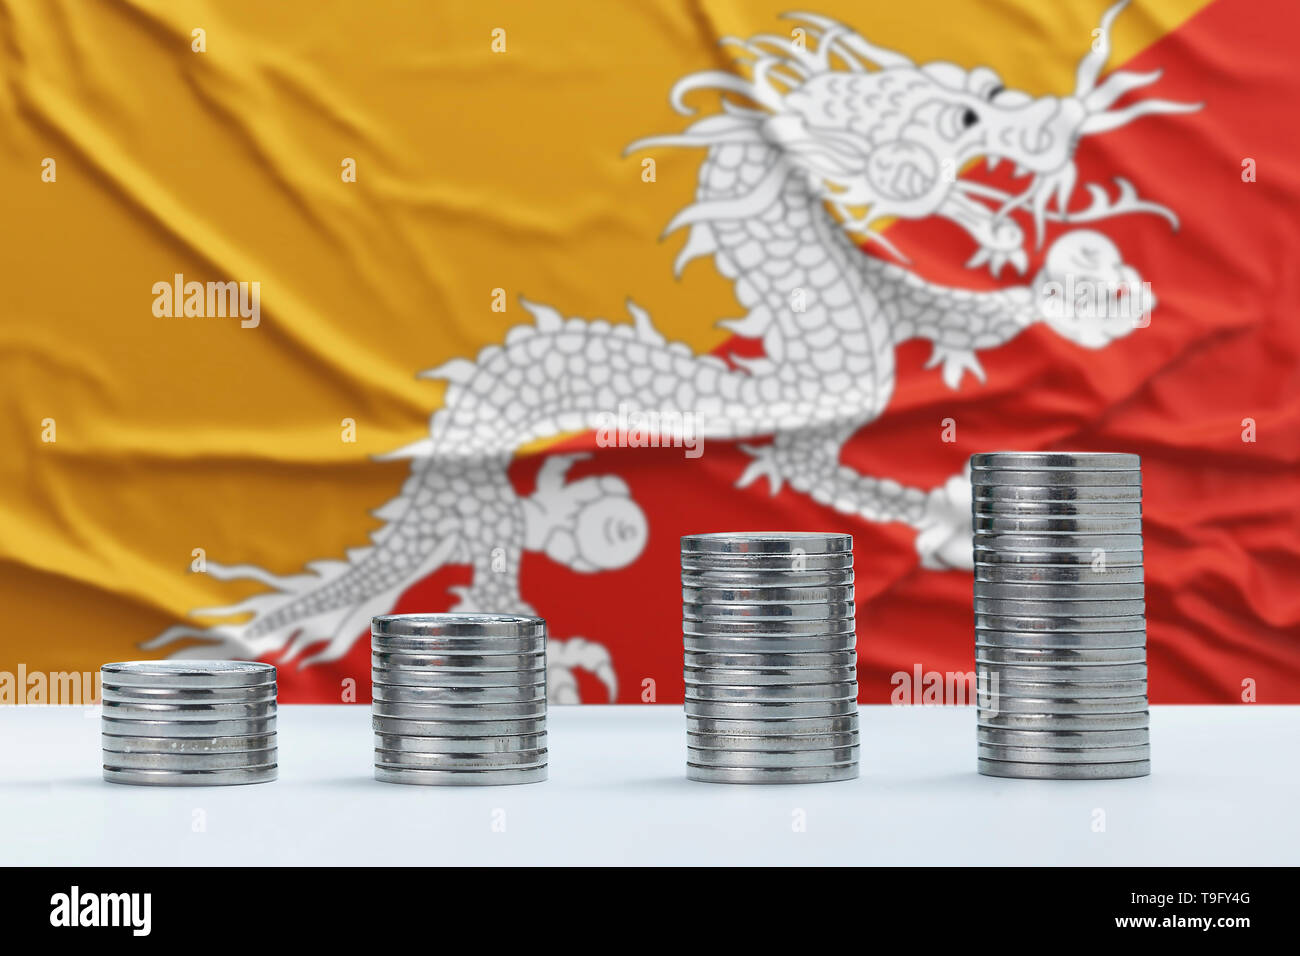 Wrinkled Bhutan flag in the background with rows of coins for finance and business concept. Saving money. - Stock Image